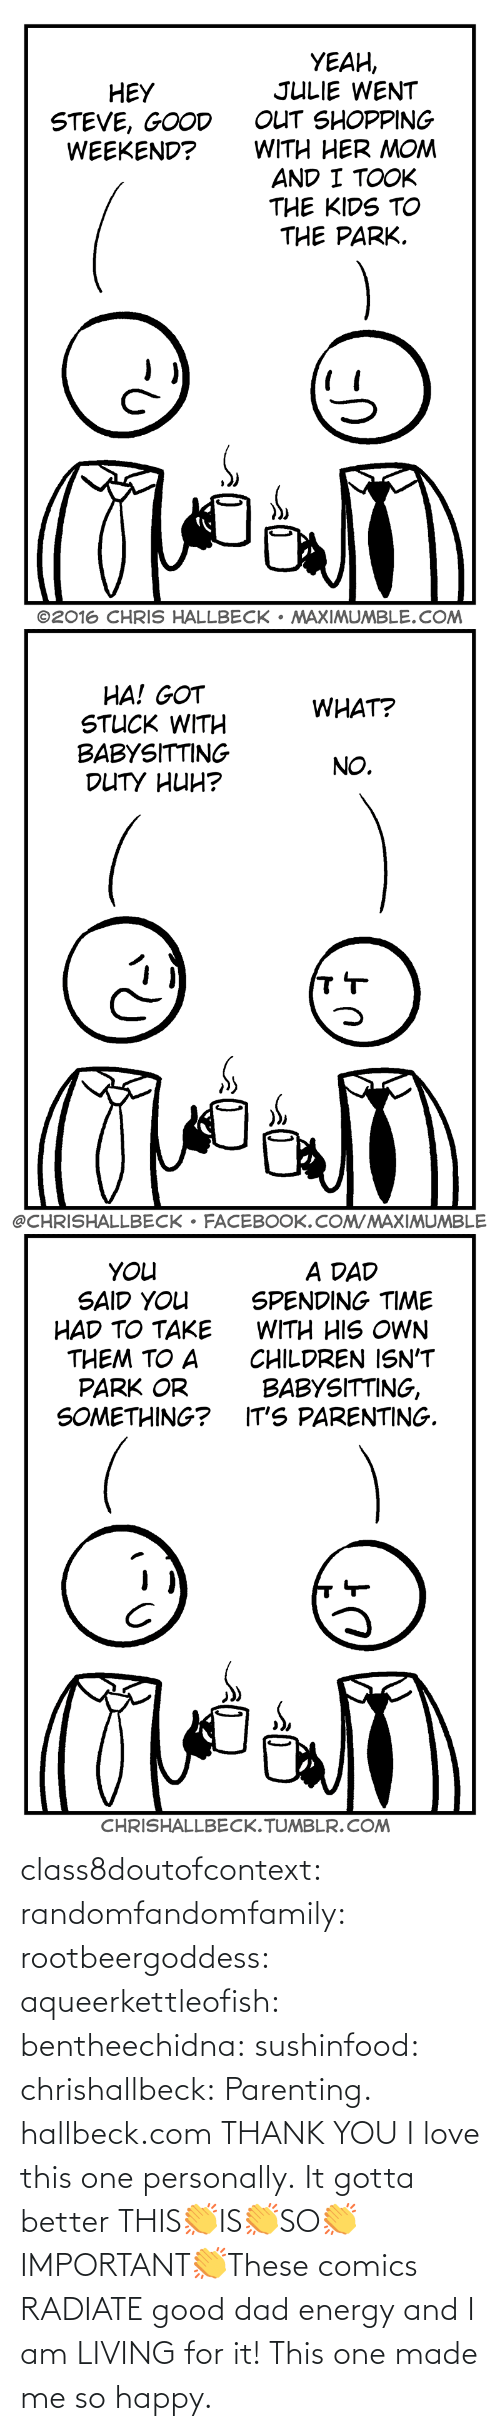 Comics: class8doutofcontext: randomfandomfamily:  rootbeergoddess:  aqueerkettleofish:  bentheechidna:  sushinfood:  chrishallbeck:  Parenting. hallbeck.com  THANK YOU  I love this one personally.    It gotta better   THIS👏IS👏SO👏IMPORTANT👏These comics RADIATE good dad energy and I am LIVING for it!    This one made me so happy.